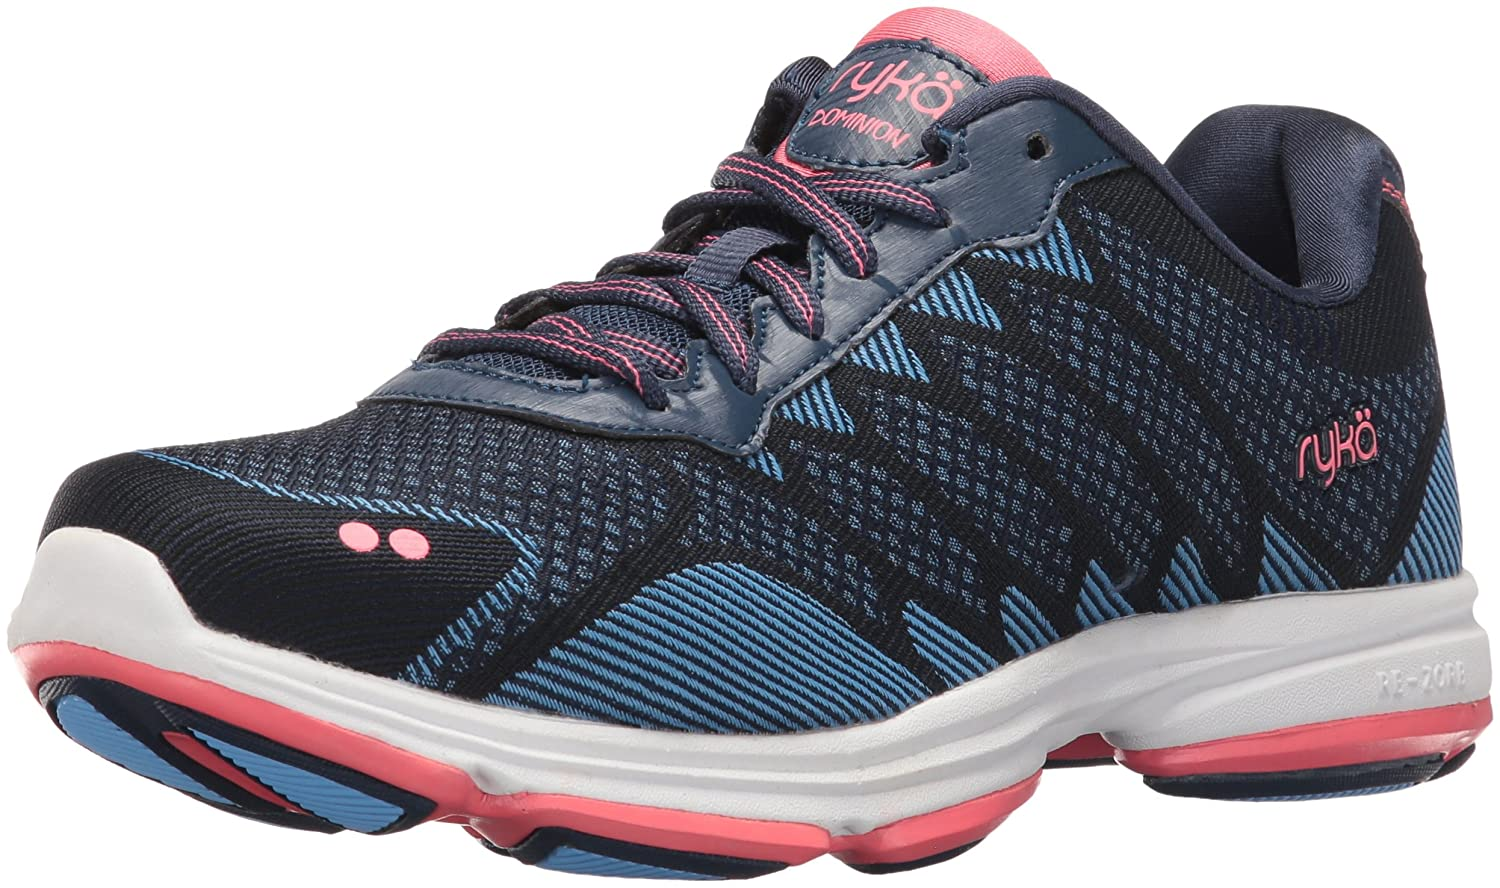 Ryka Women's Dominion Walking Shoe B01KW9TIII 7.5 B(M) US|Navy/Blue